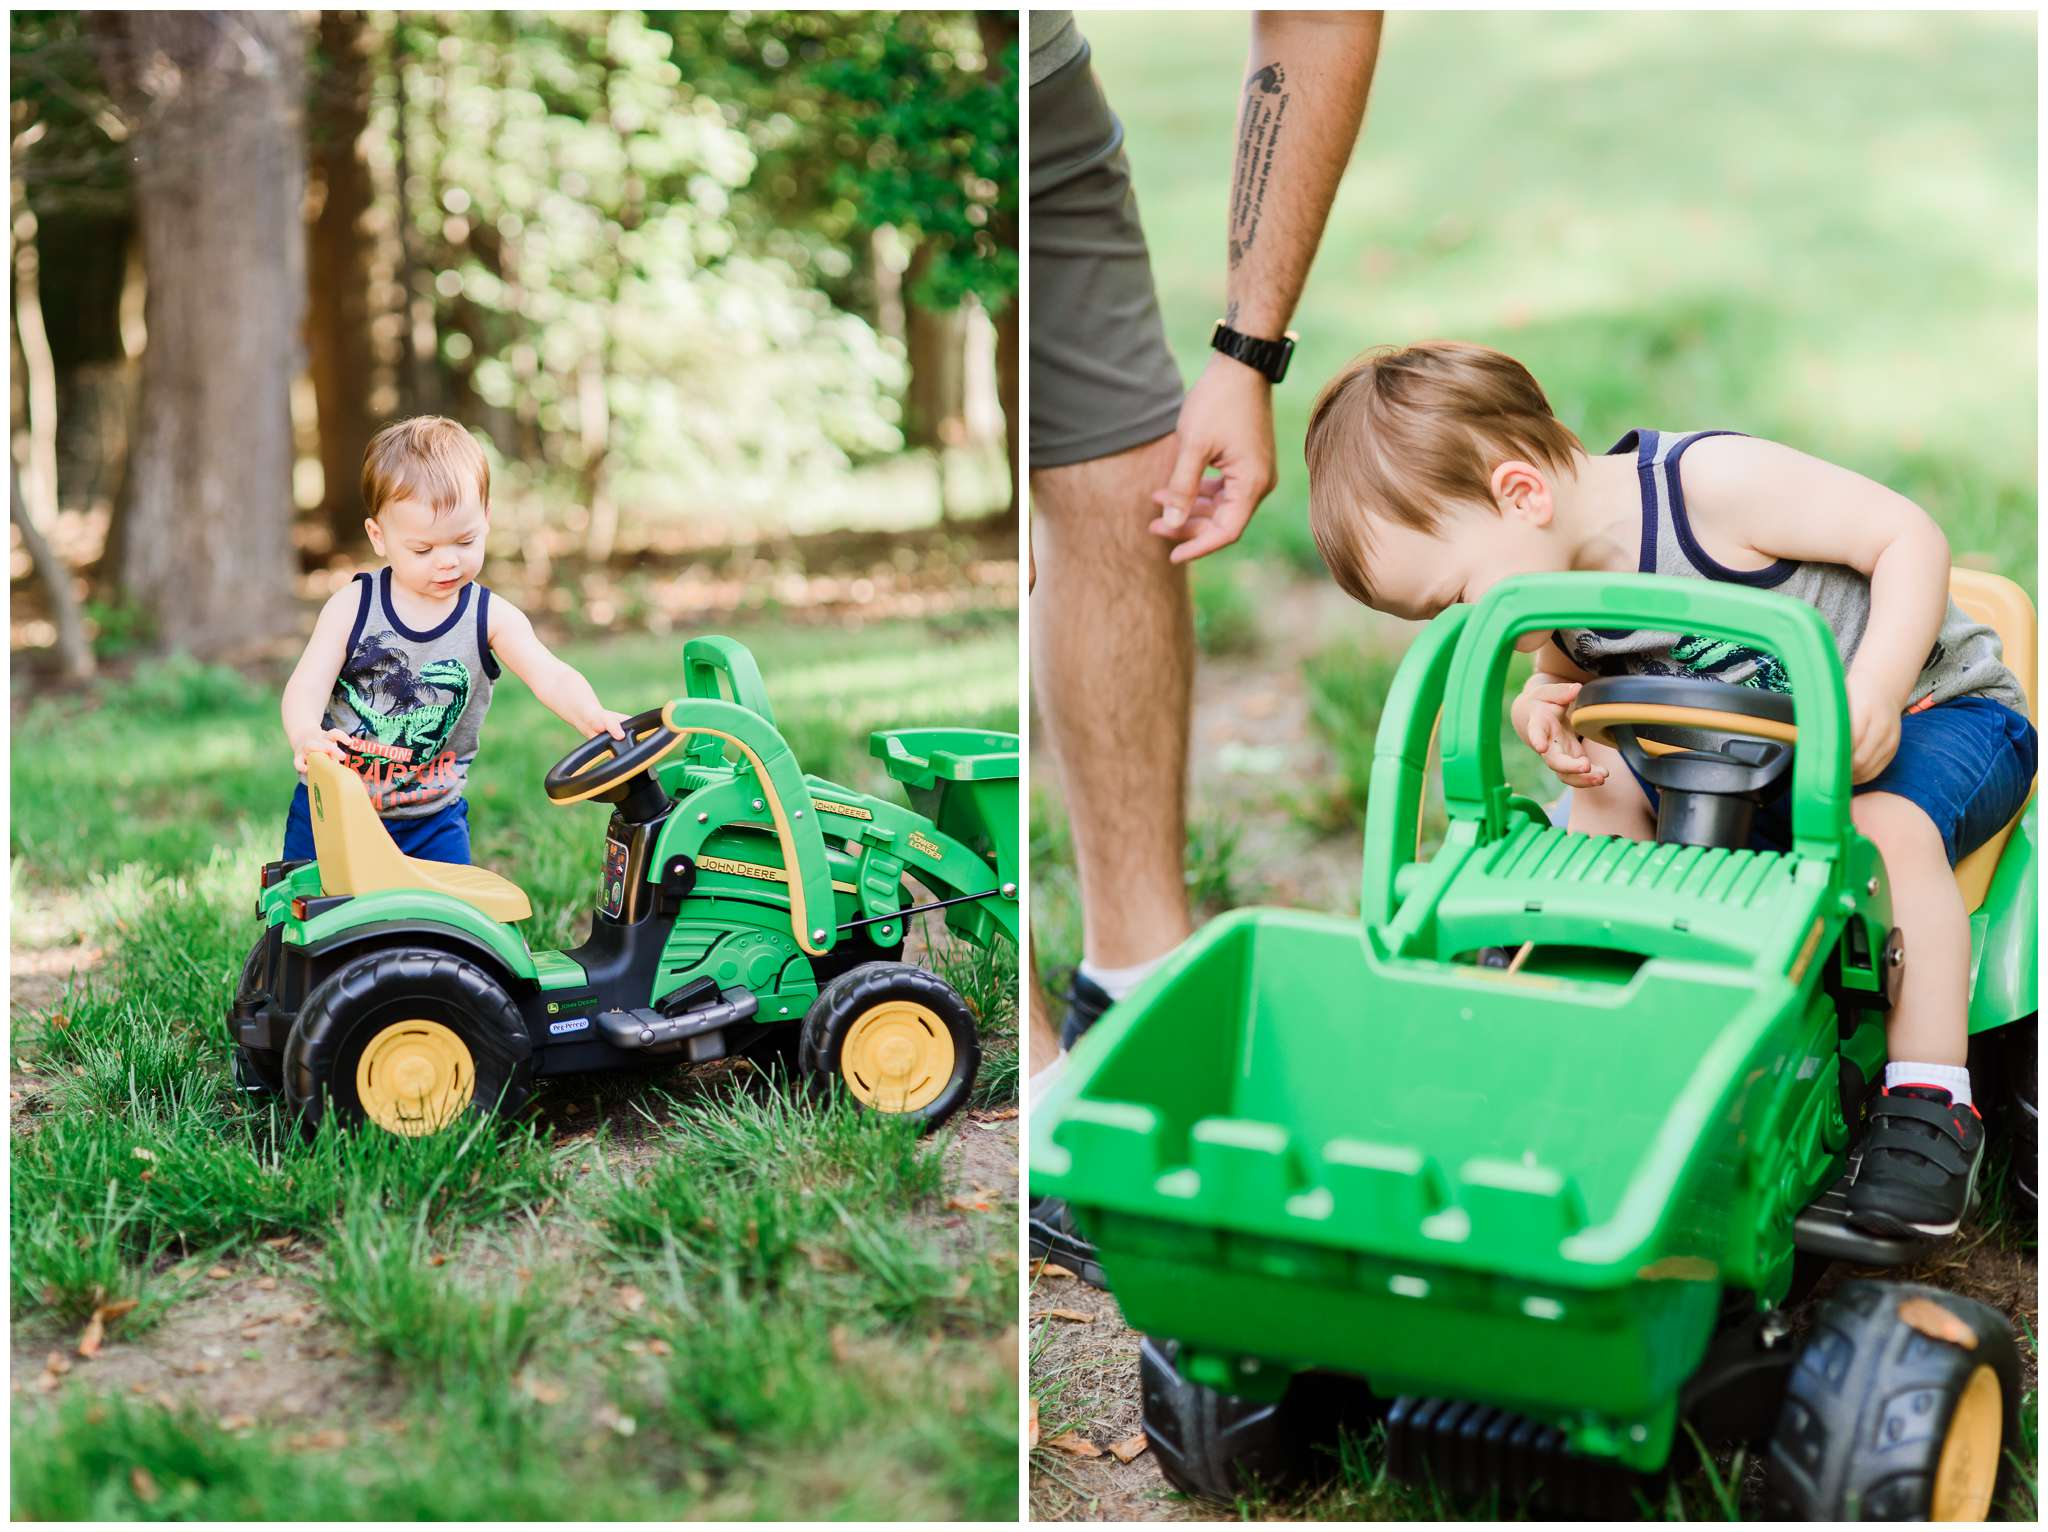 Liam and Tractor_4007.jpg